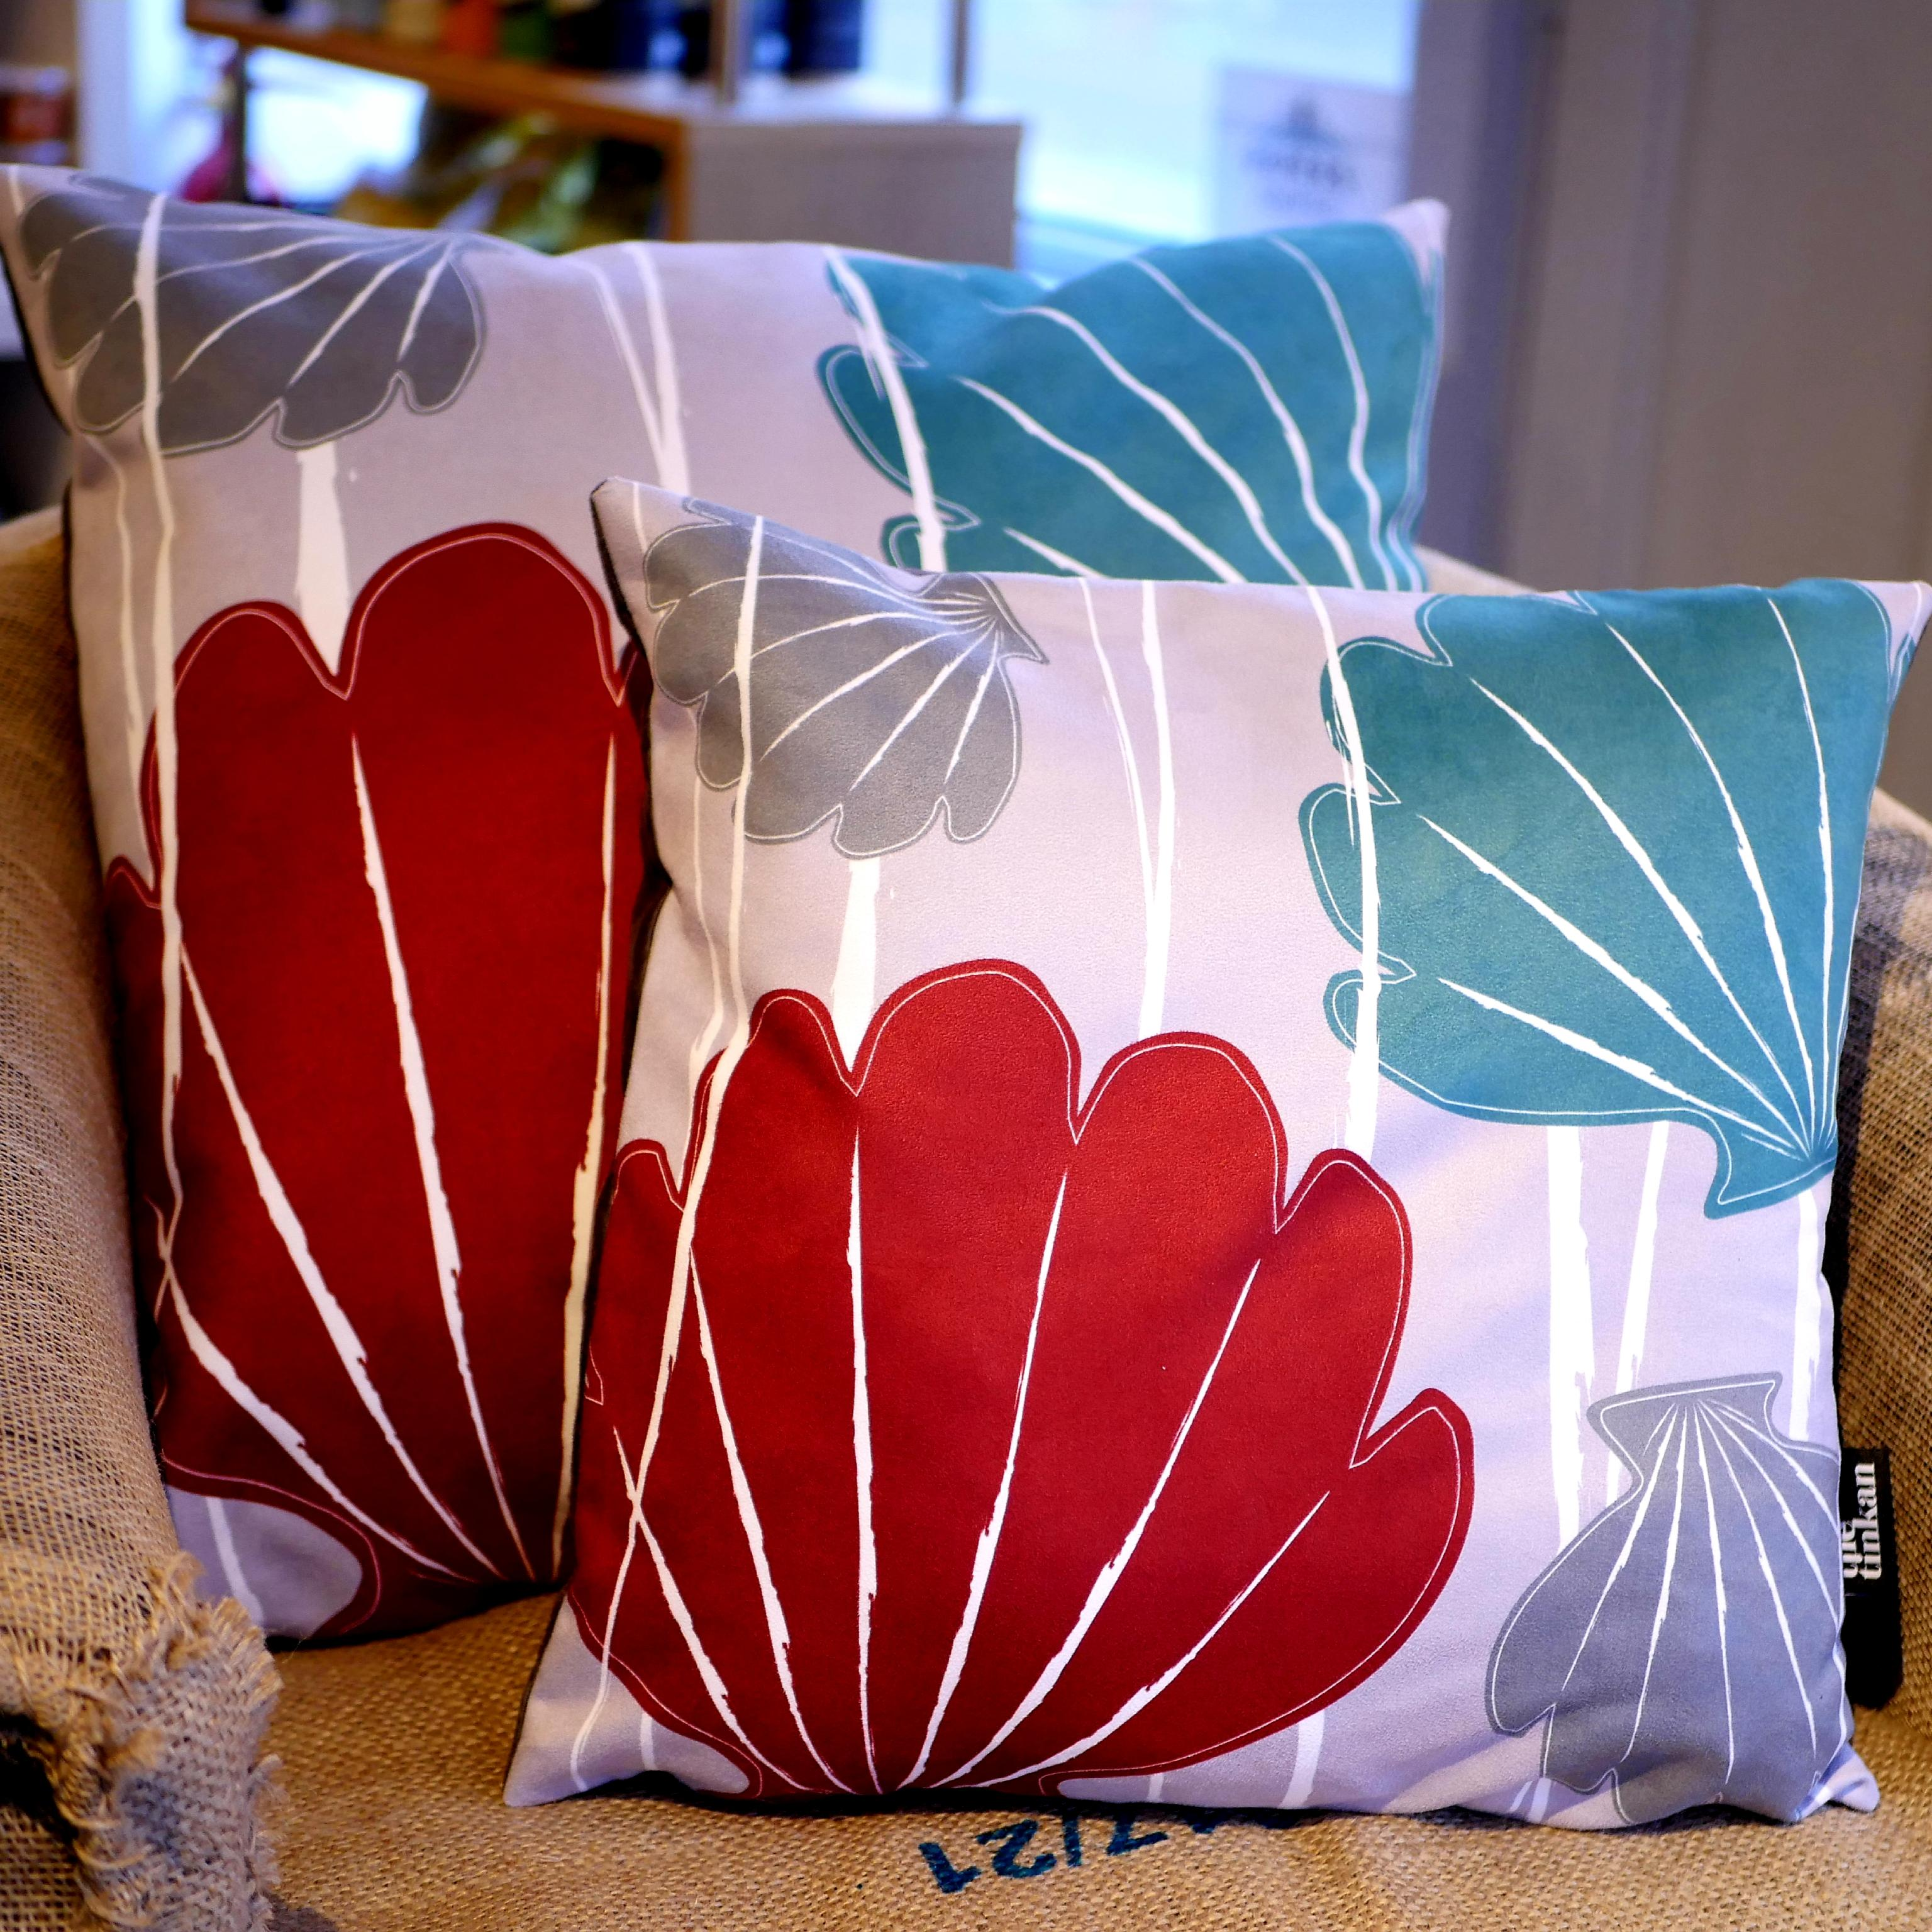 Aqua teal, red & grey faux suede soft feel Abstract Shells Cushions, 43cm & 57cm square, with luxury inner pads designed by thetinkan. VIEW PRODUCT >>